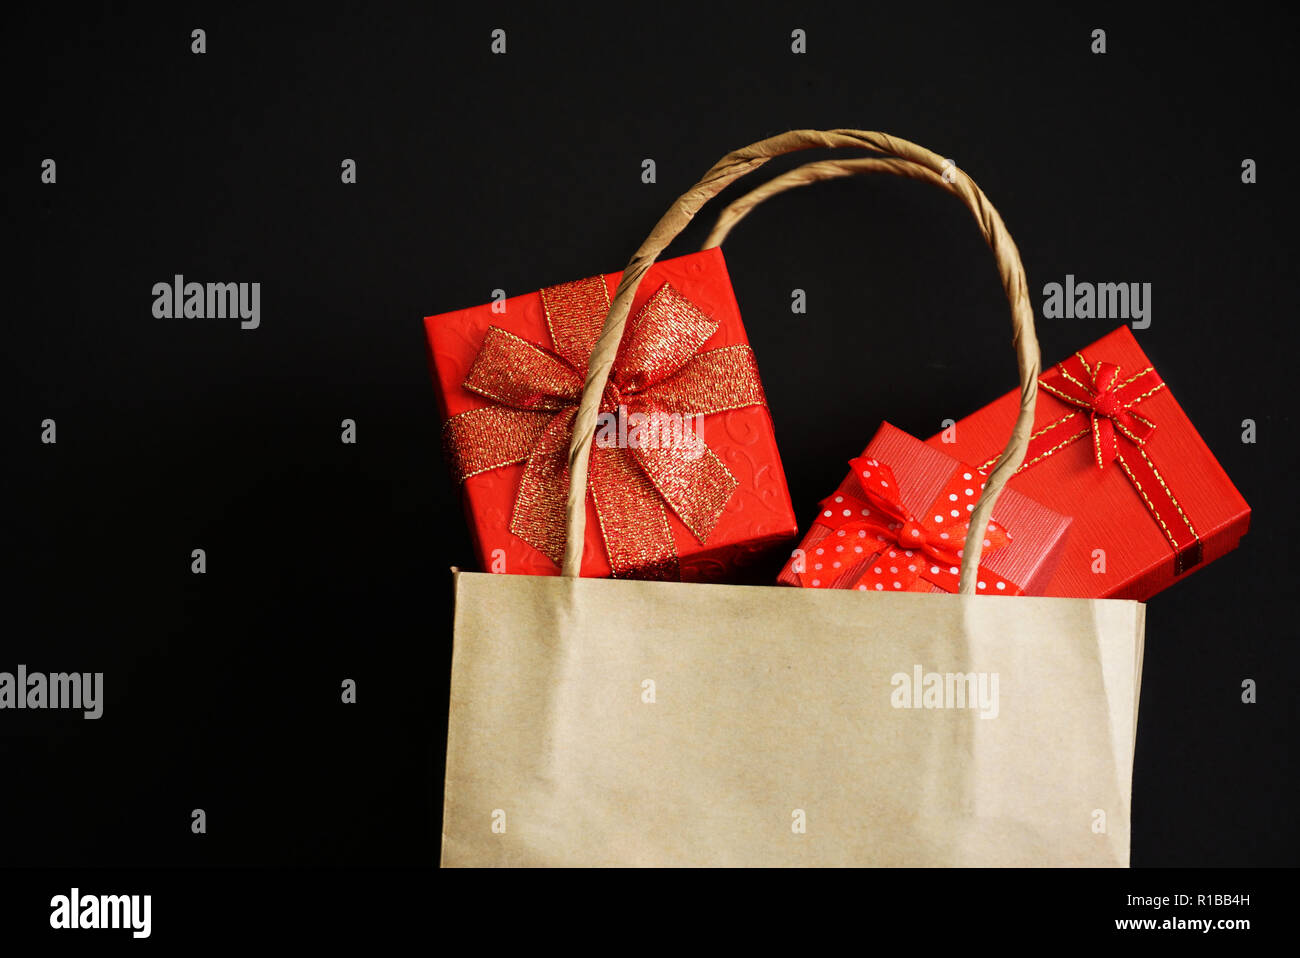 Tree red gift box in shopping bag on black background for shopping theme. - Stock Image